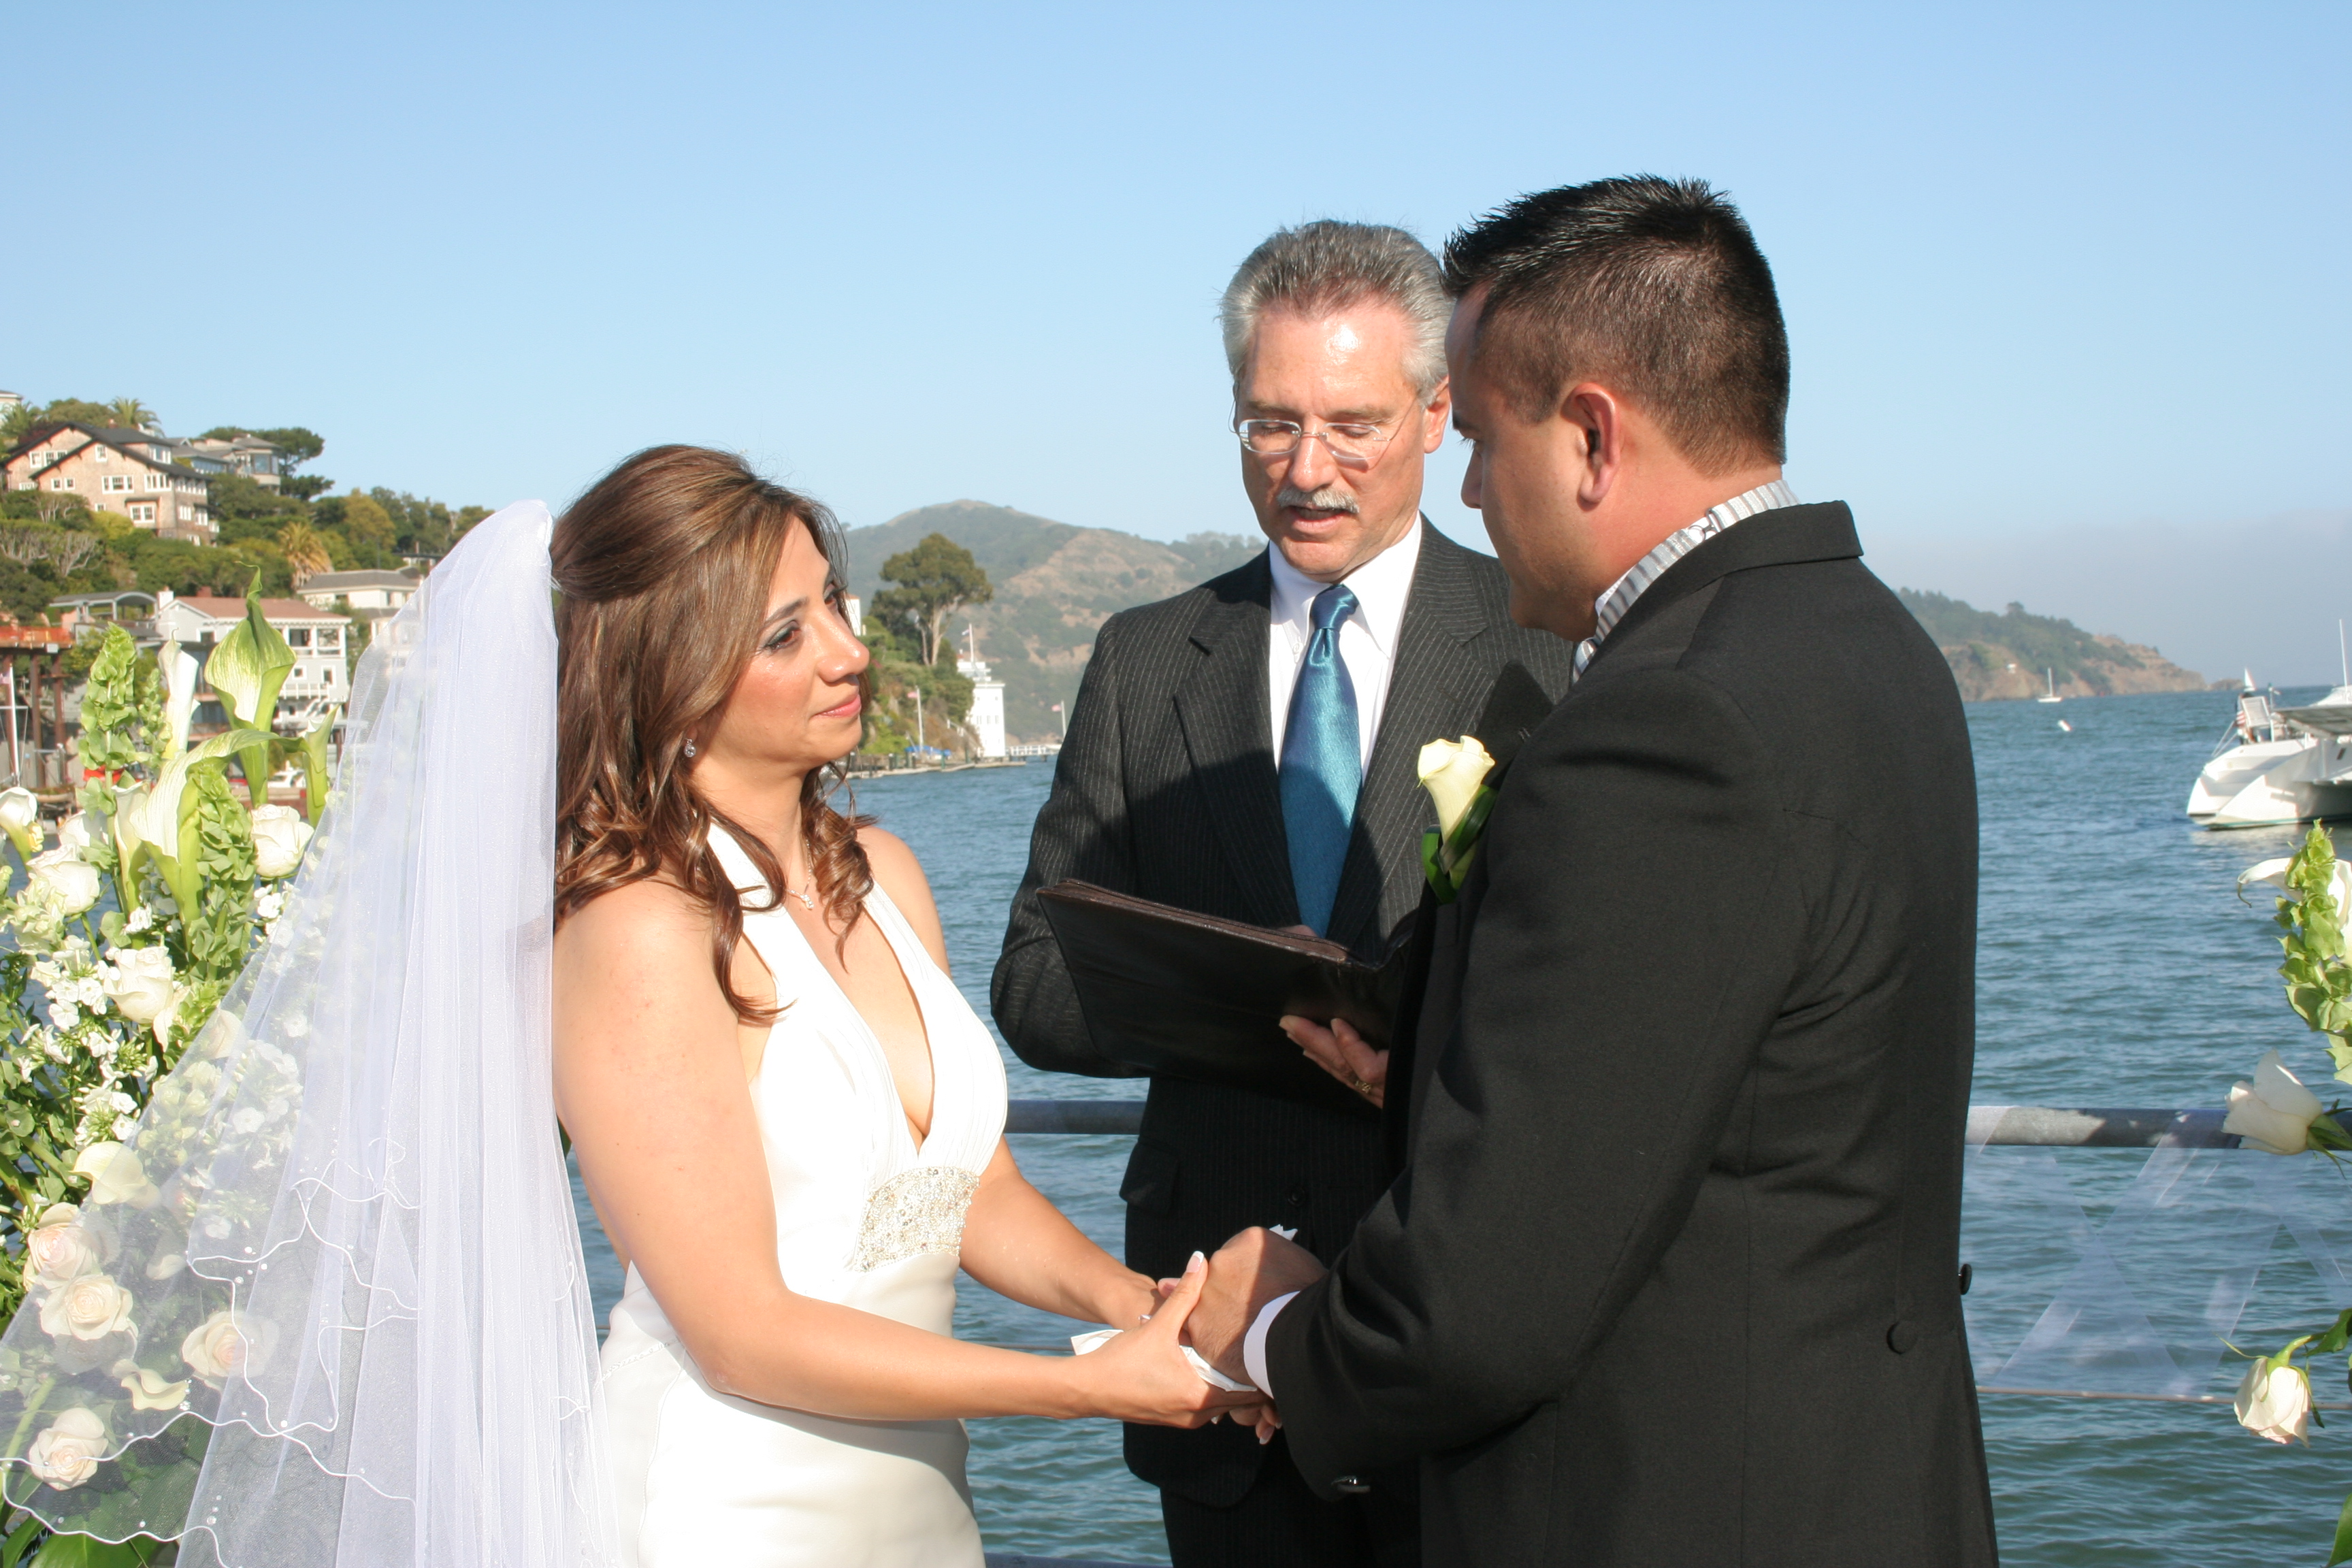 The Alter ADLER PHOTOGRAPHY & VIDEO PRODUCTIONS